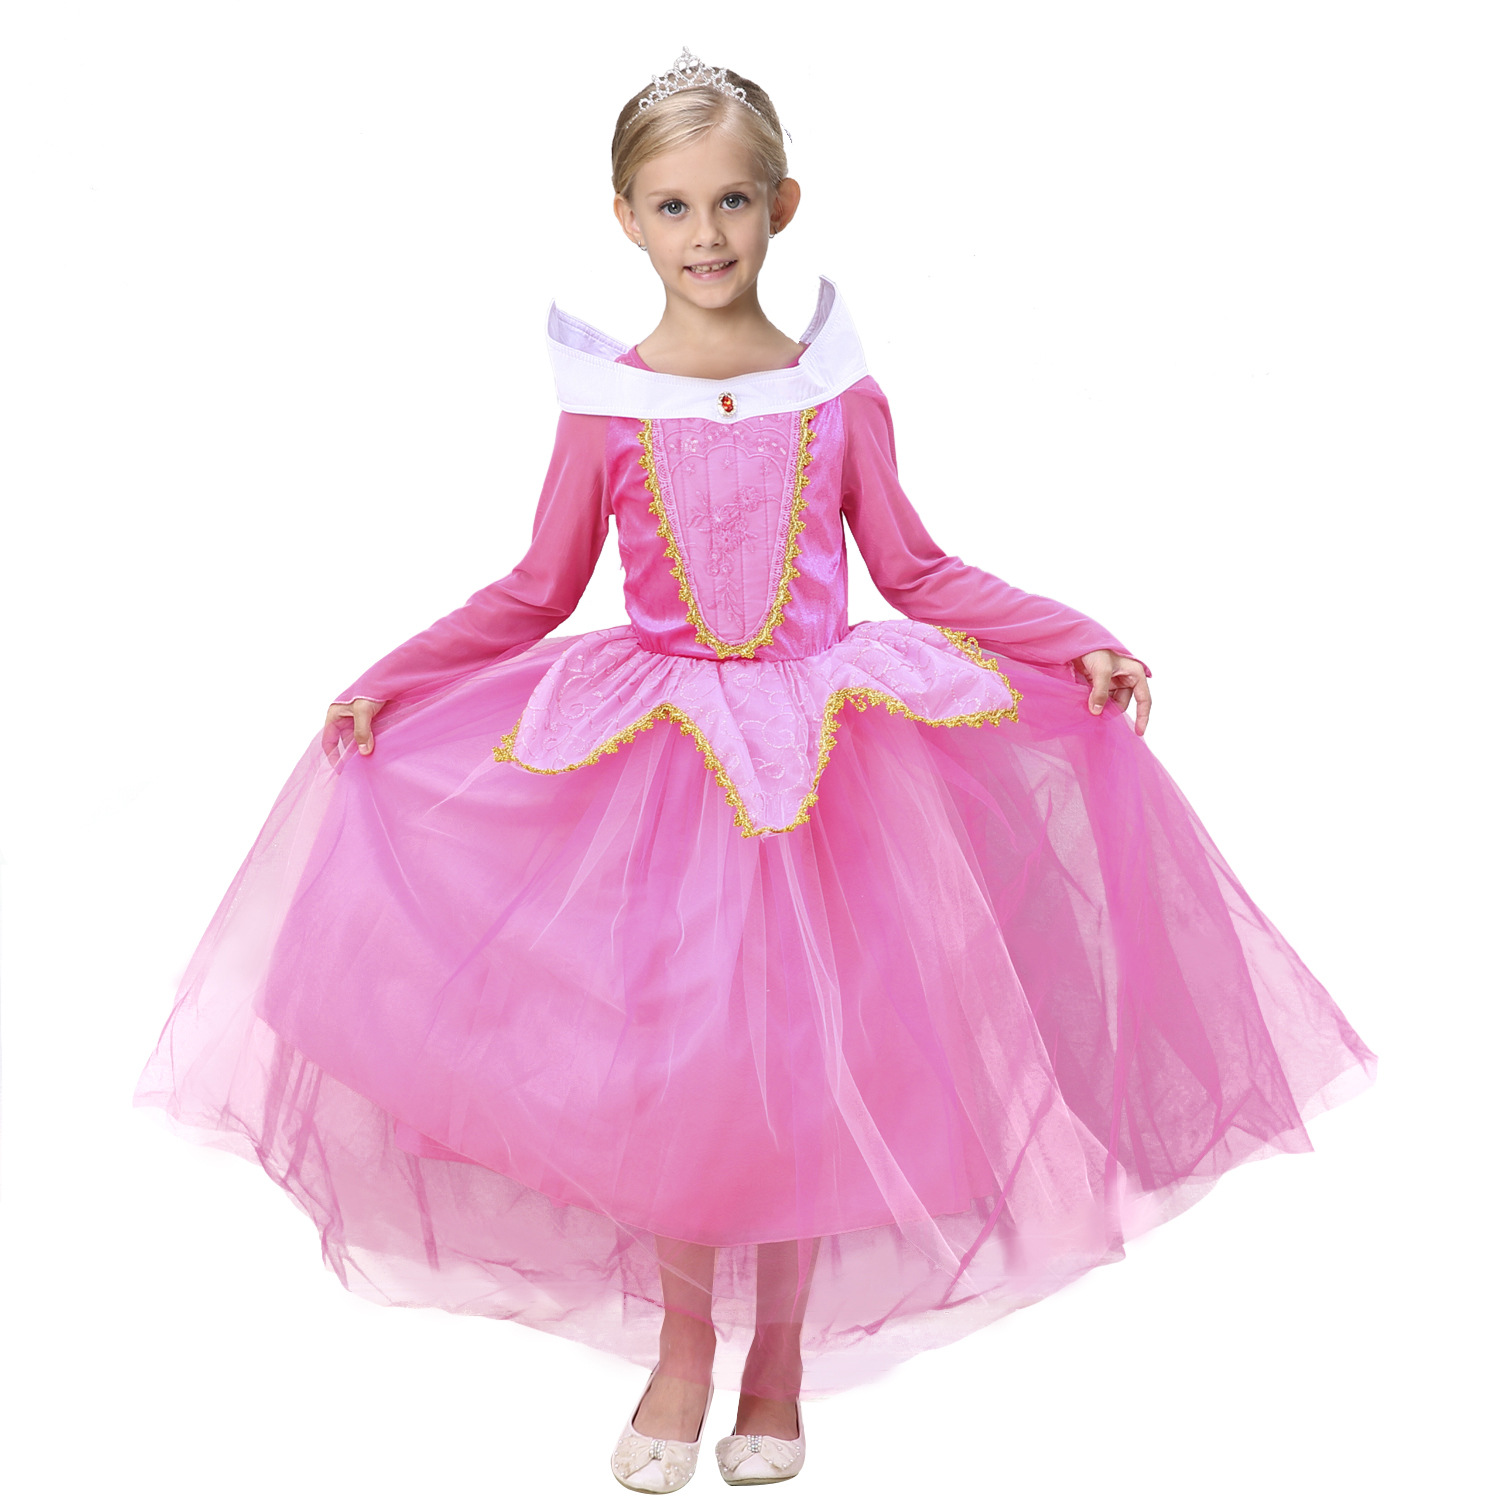 enfants sleeping beauty cosplay costume princess carnival dresses 4t to 12 years old girls princess cinderella pink costume dooley j evans v enterprise 4 video activity book key intermediate ответы к рабочей тетради к видеокурсу